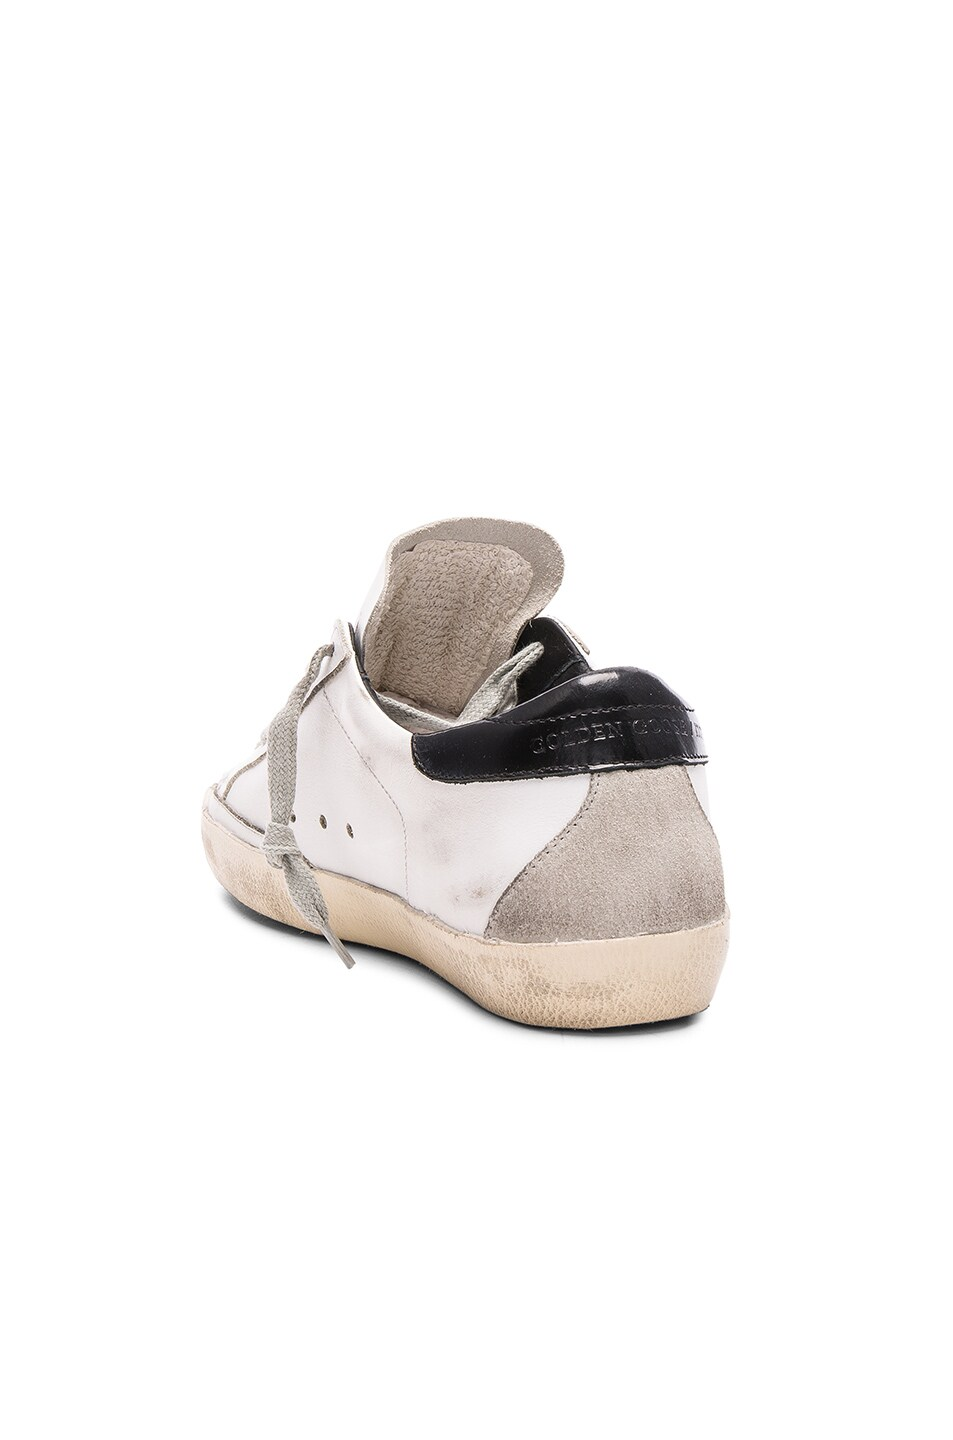 Image 3 of Golden Goose Leather Superstar Low Sneakers in White, Black & Cream Metal